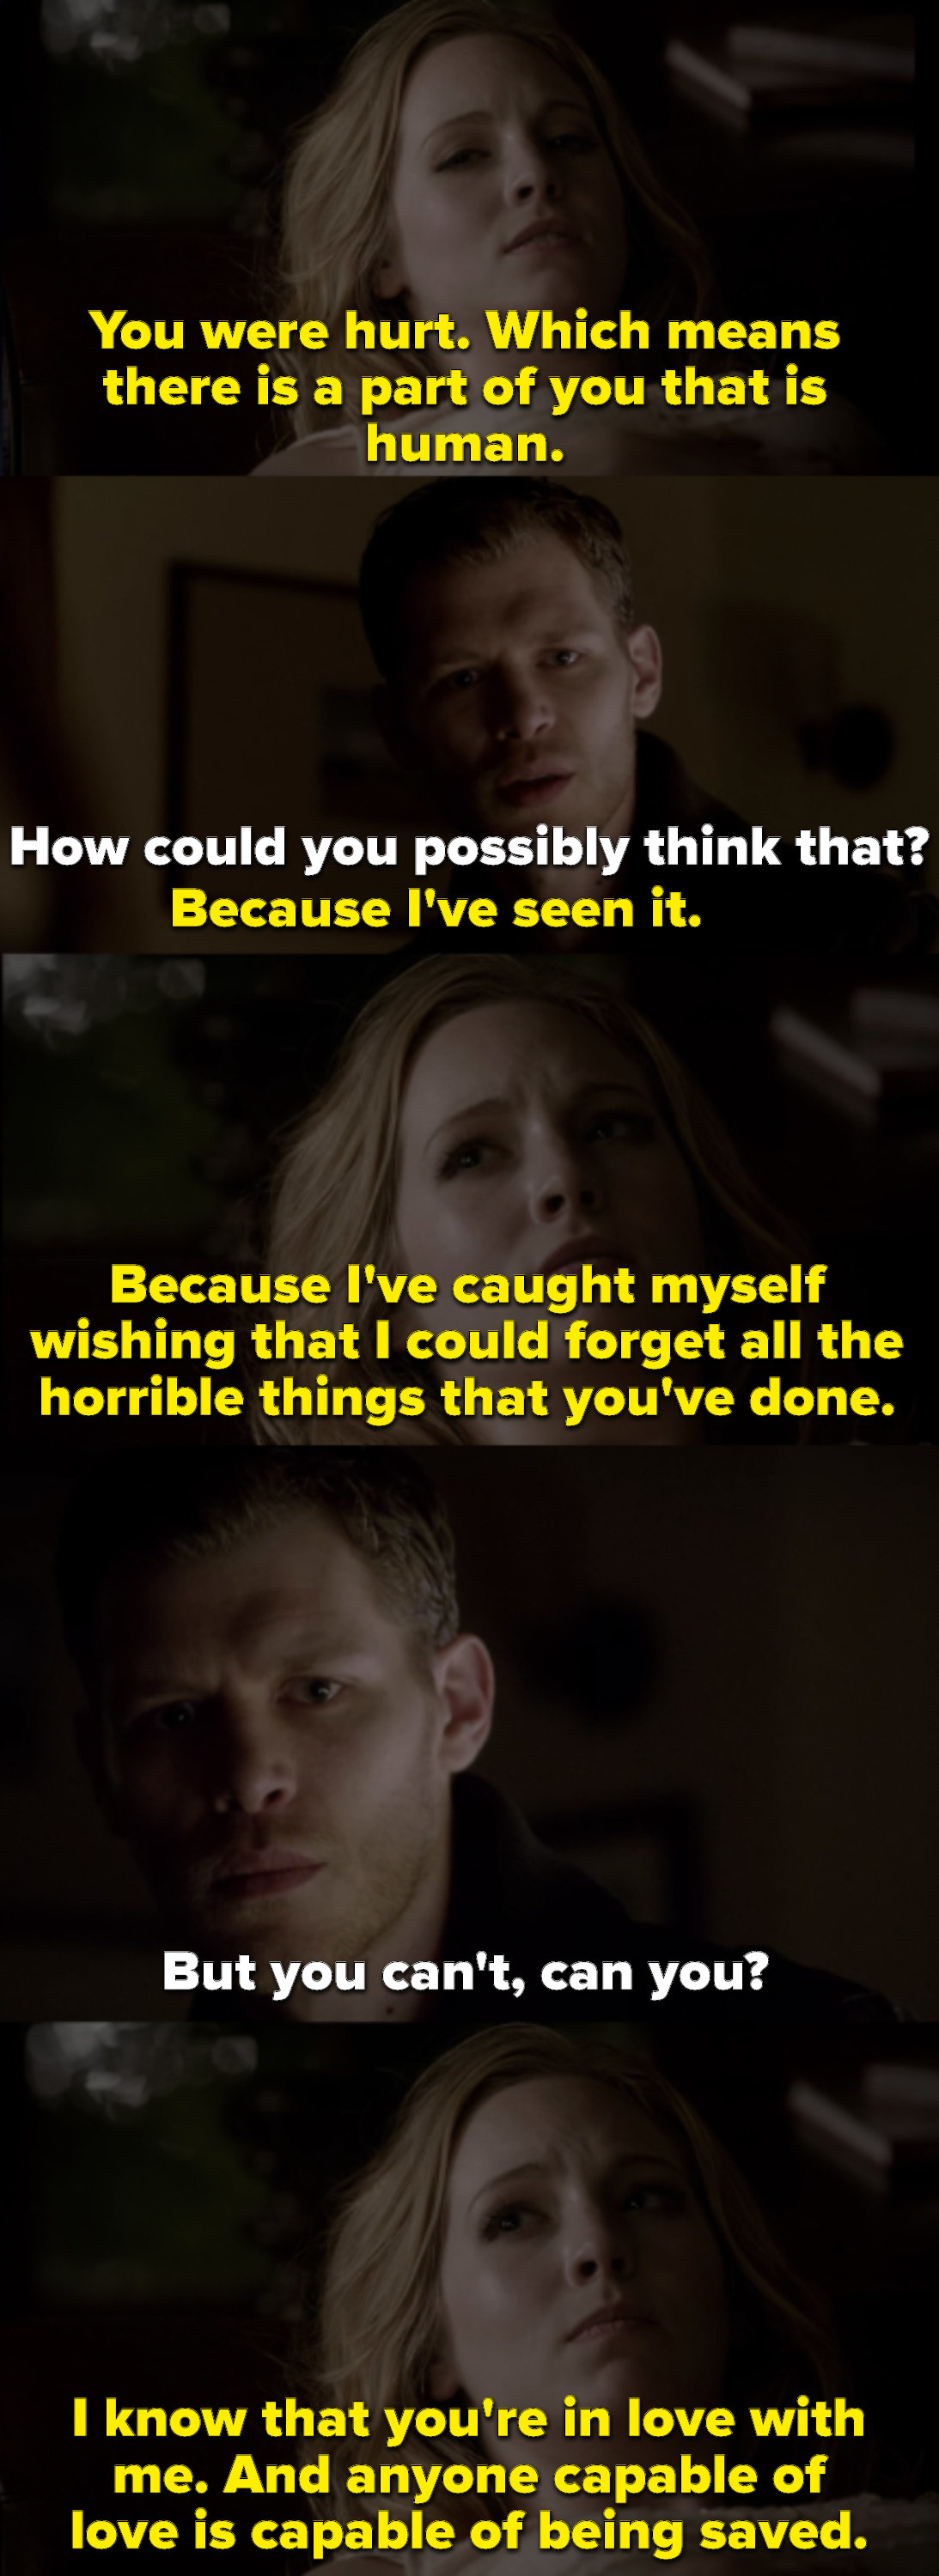 A weak and dying Caroline says she knows Klaus is in love with her and that anyone capable of love is capable of being saved.  She says she wishes she could look past the things he's done